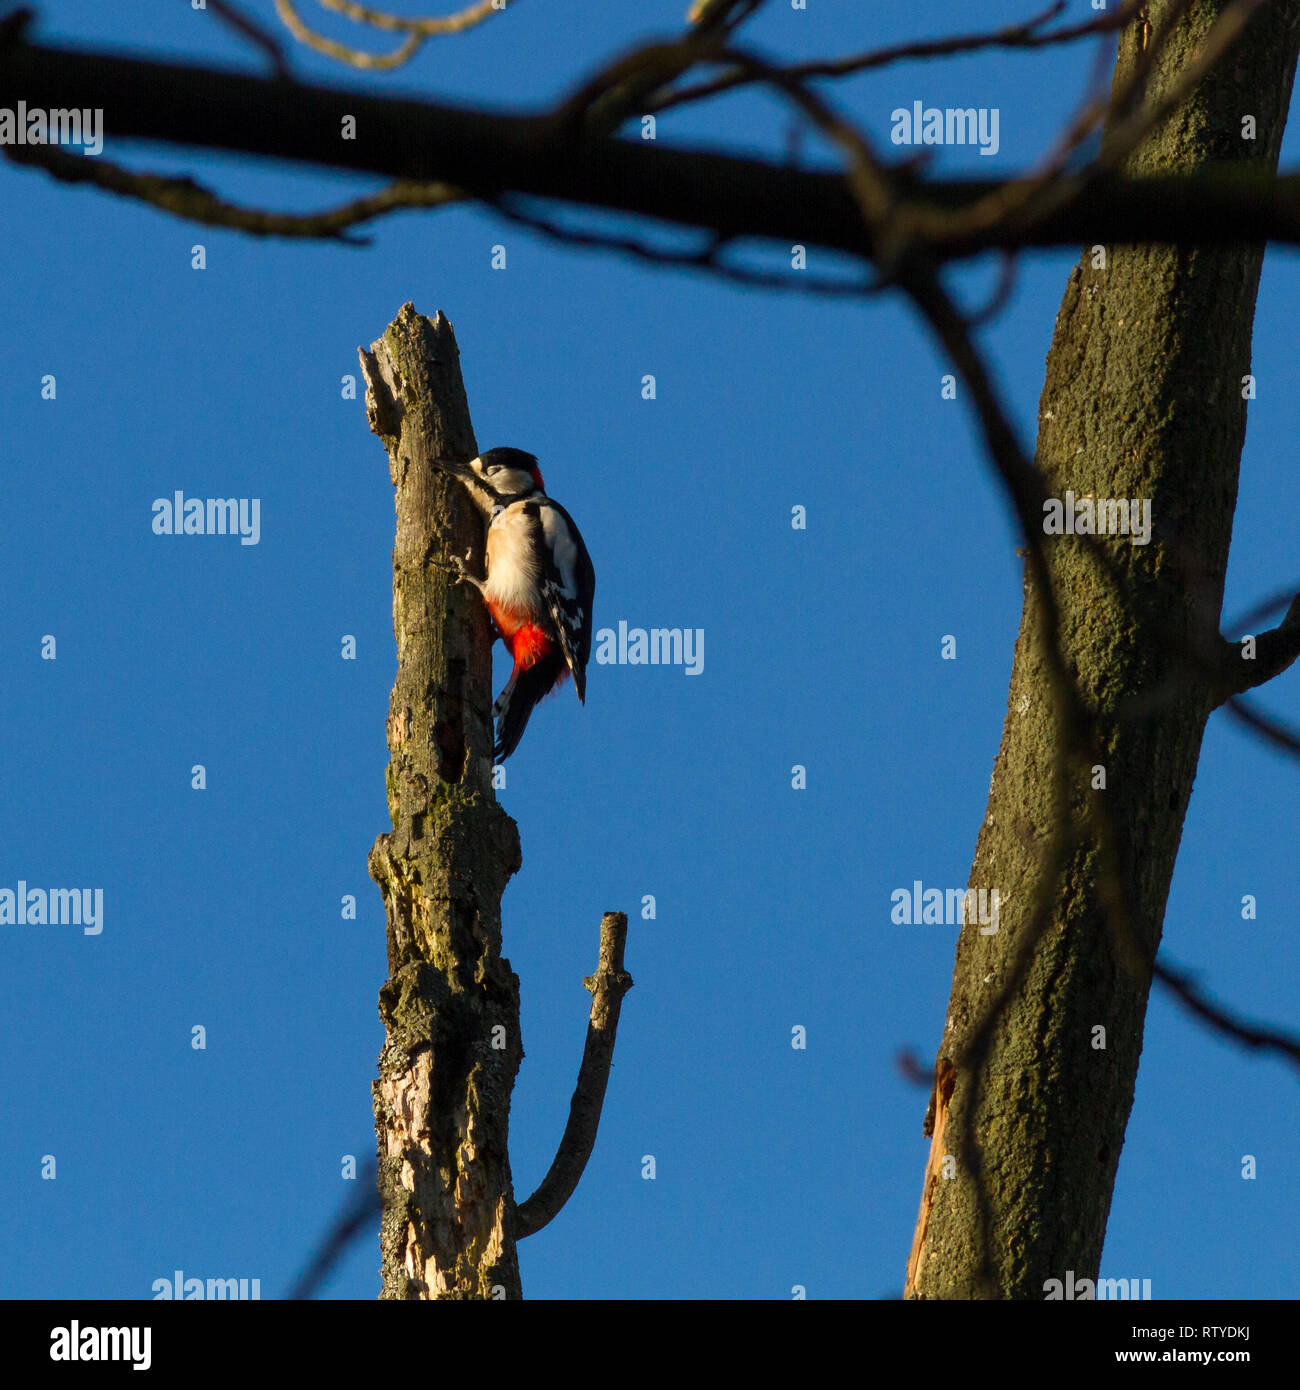 Male greater spotted woodpecker (Dendrocopos major) seemingly asleep on a dead tree stump - Stock Image